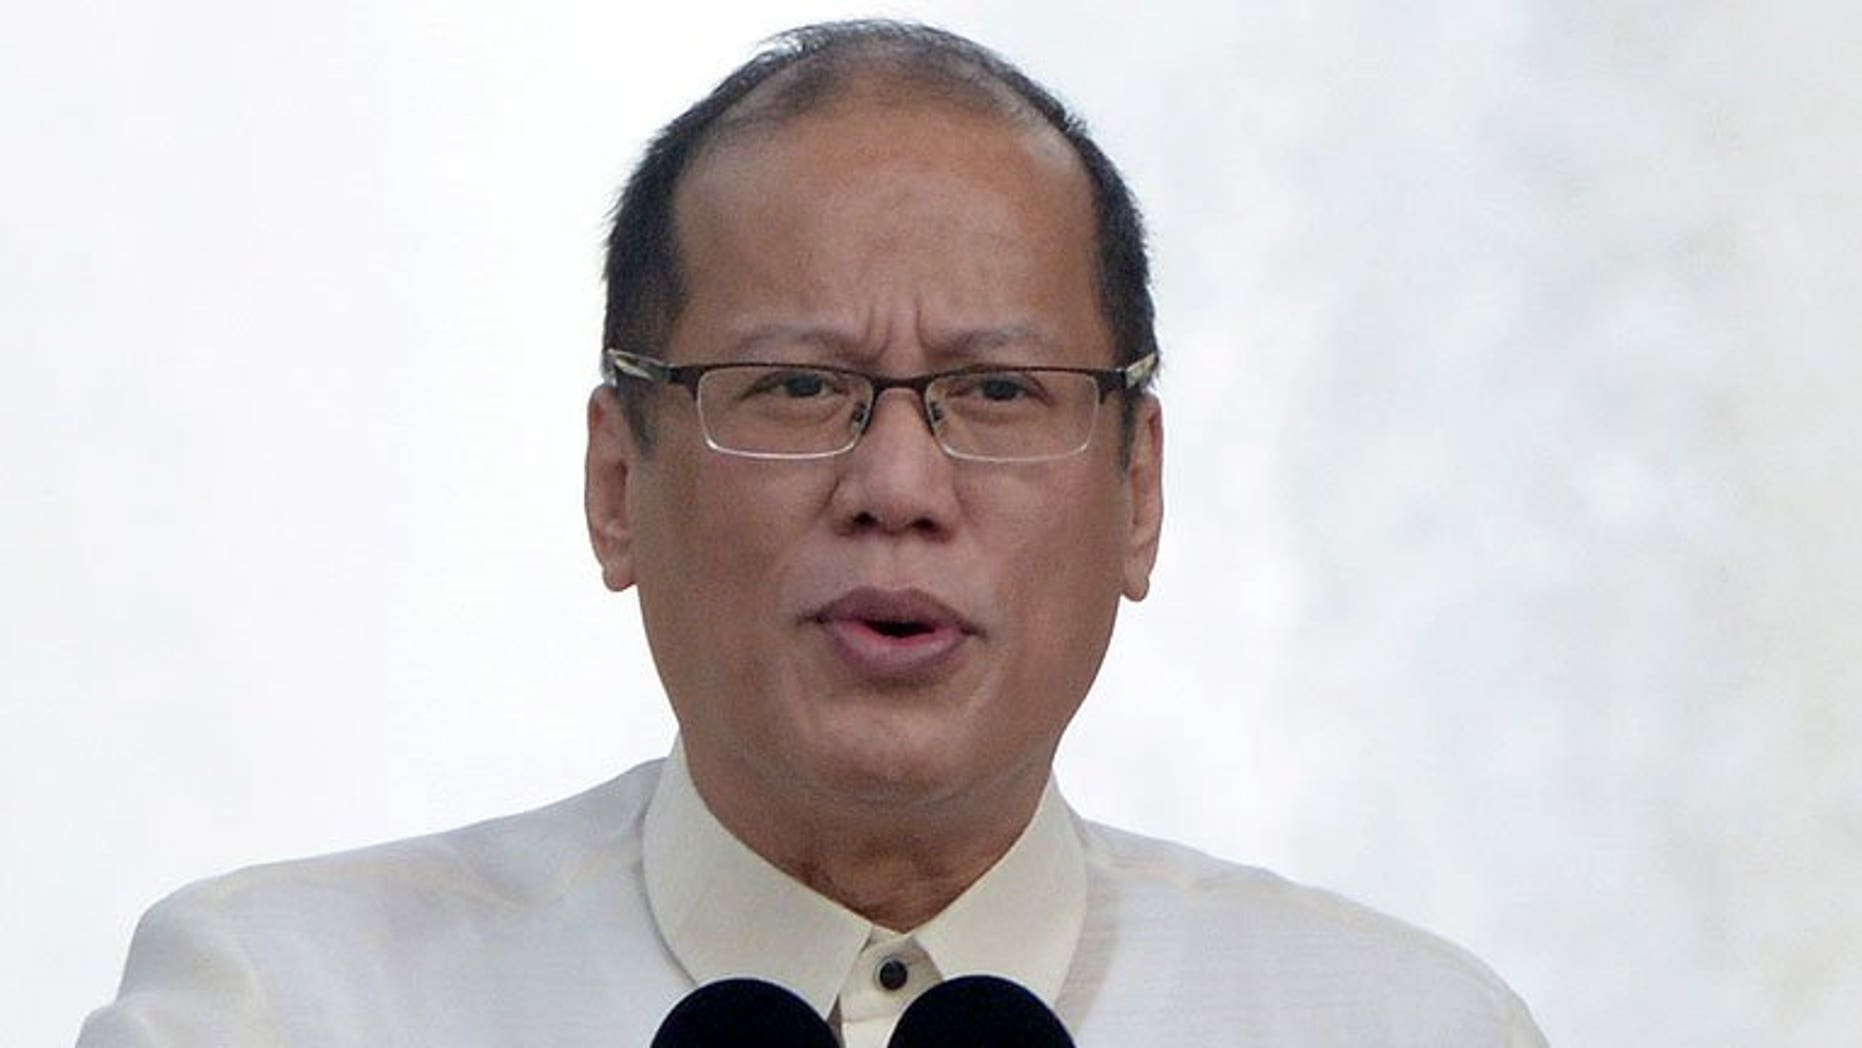 Philippine President Benigno Aquino addresses the crowd during a ceremony in Manila, on June 12, 2013. Thousands of workers will lose out when a plantation owned by Aquino's family is carved up for its farm hands next year, an official said Friday.